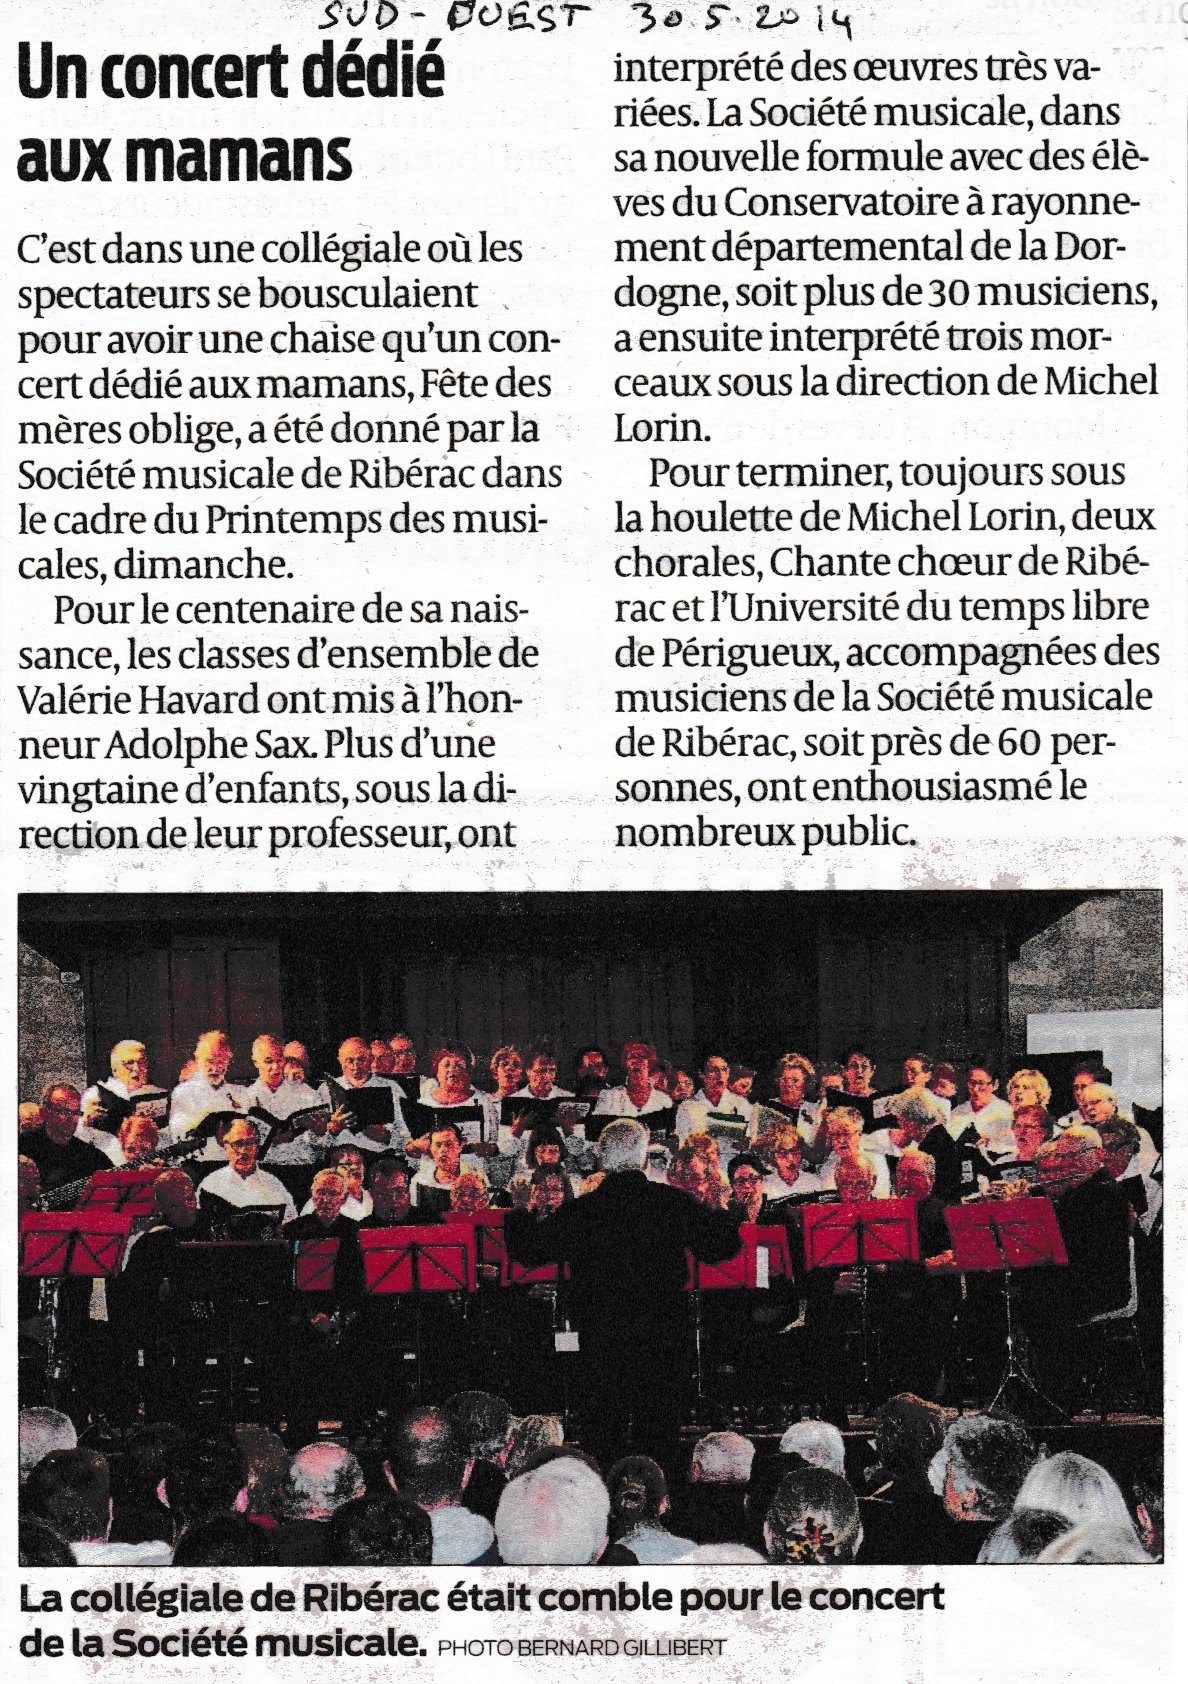 140530 musicales sud ouest